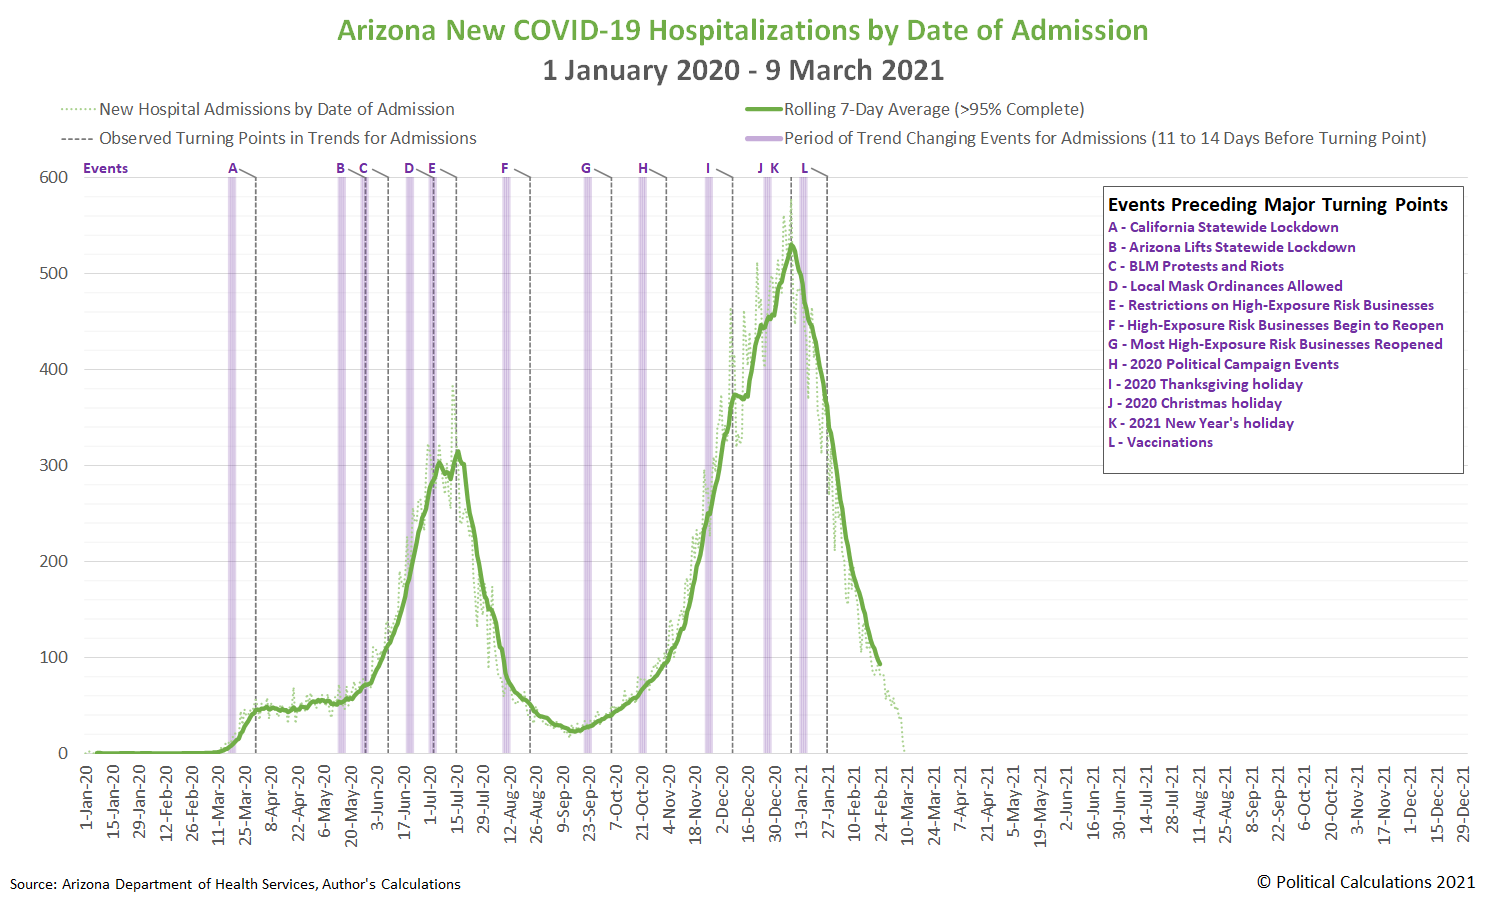 Arizona New COVID-19 Hospitalizations by Date of Admission, 1 January 2020 - 9 March 2021